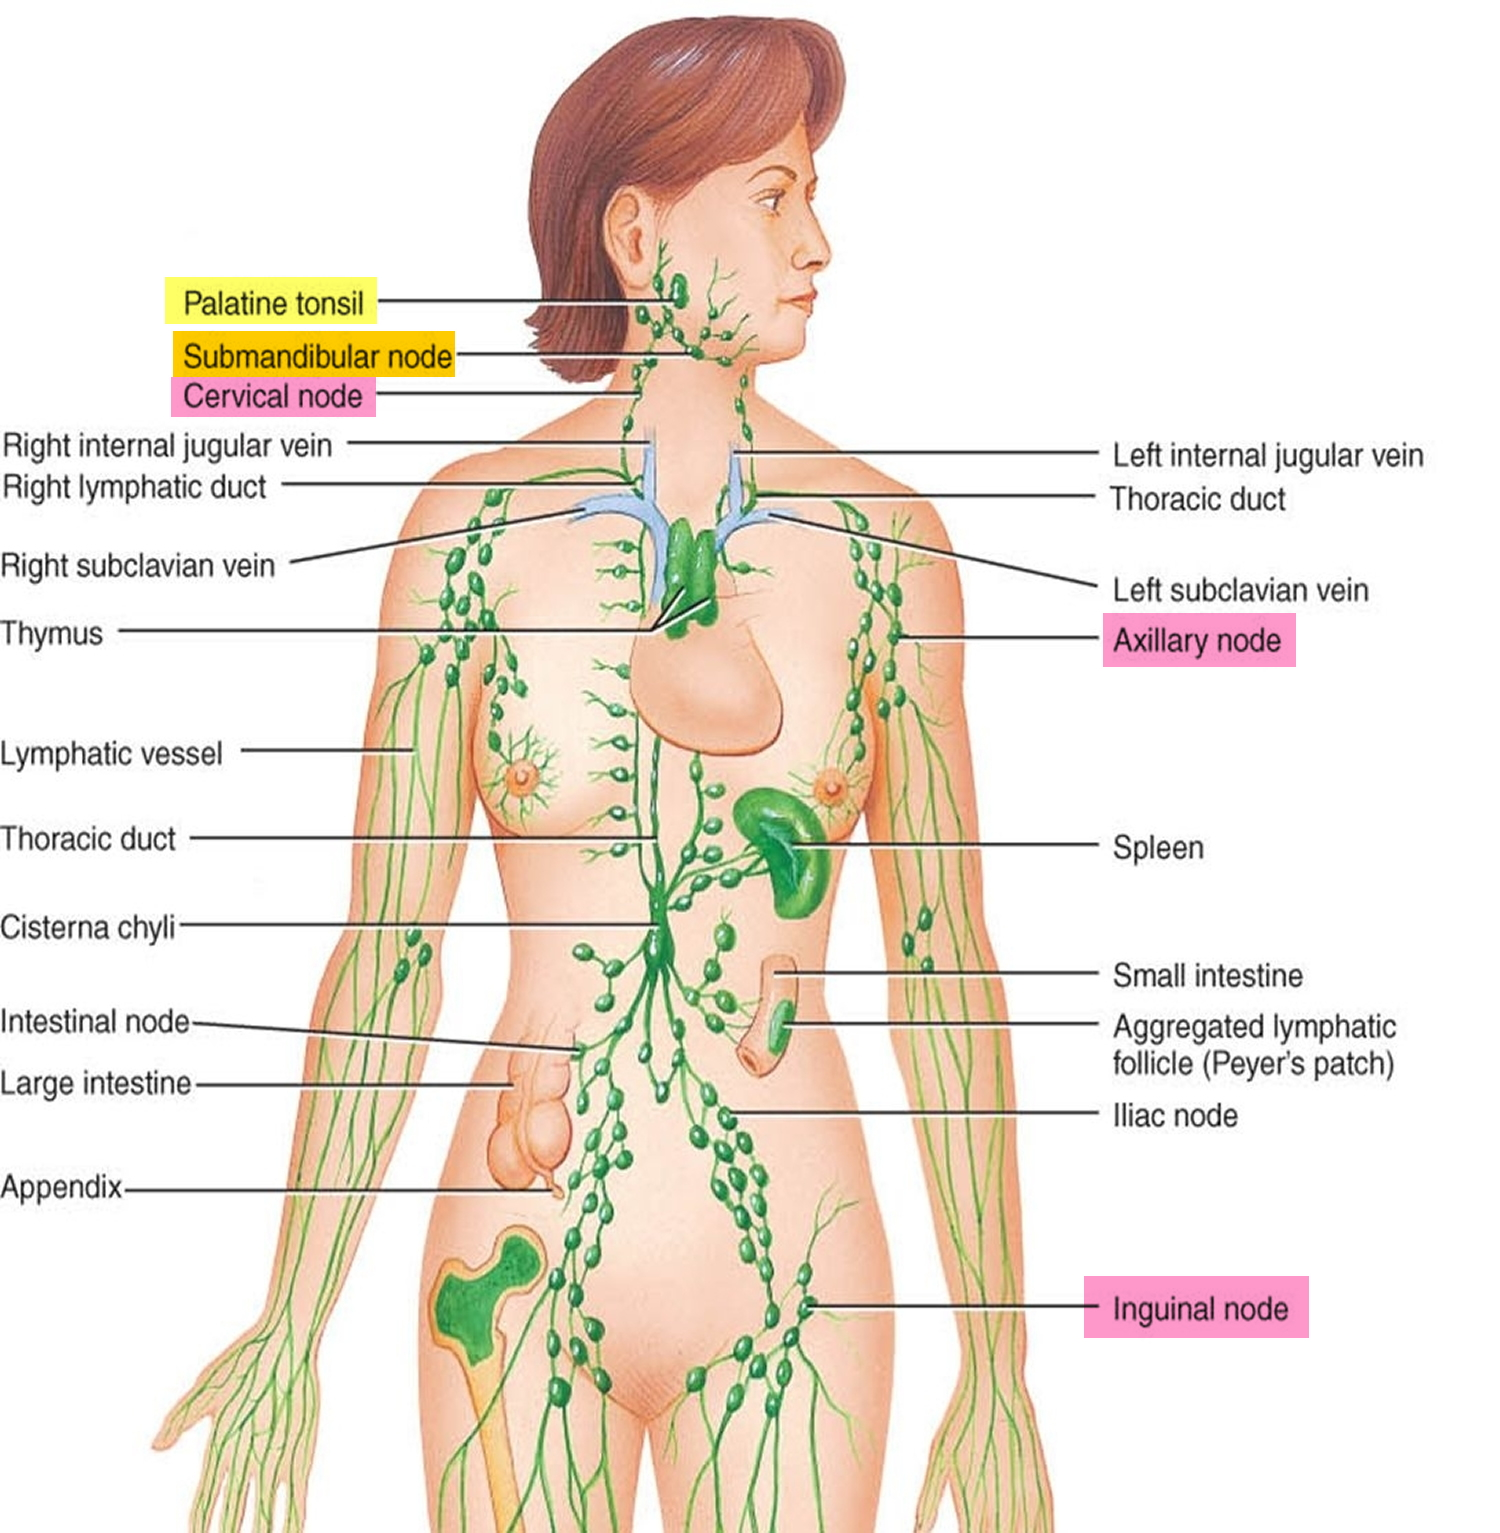 lymph nodes - causes of swollen lymph nodes in neck, groin, armpit